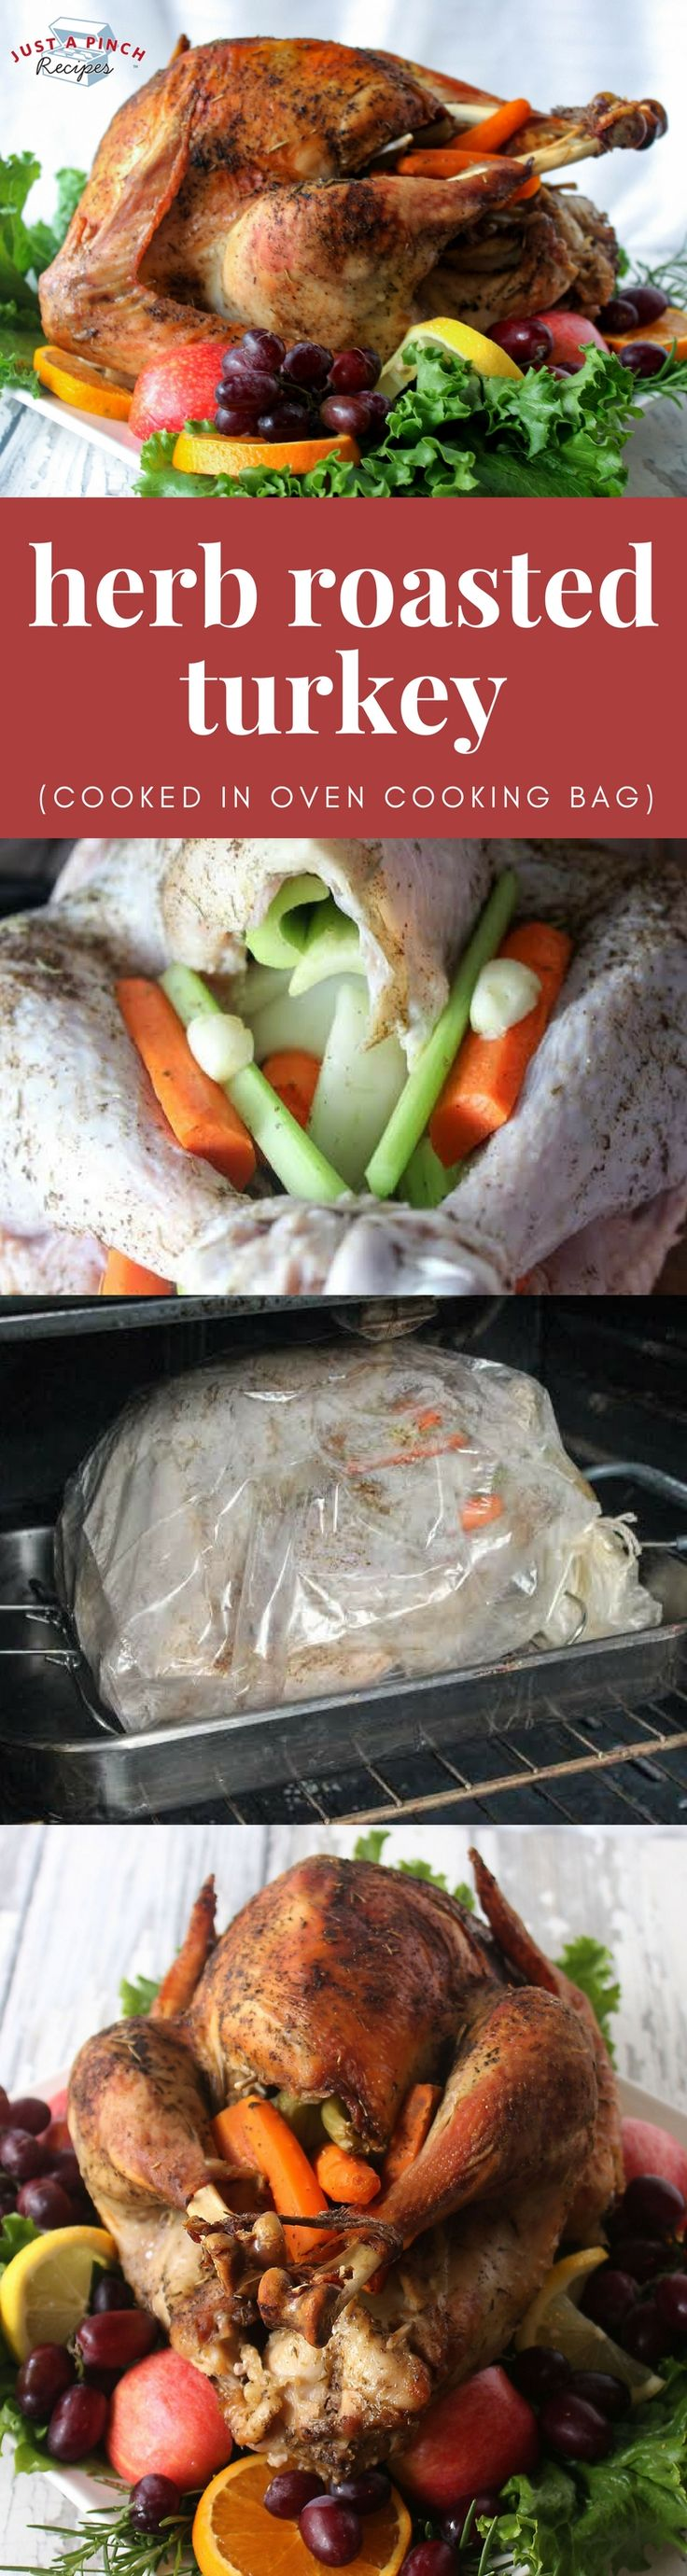 easy christmas turkey recipe herb roasted turkey cooked in oven cooking bag christmasrecipes